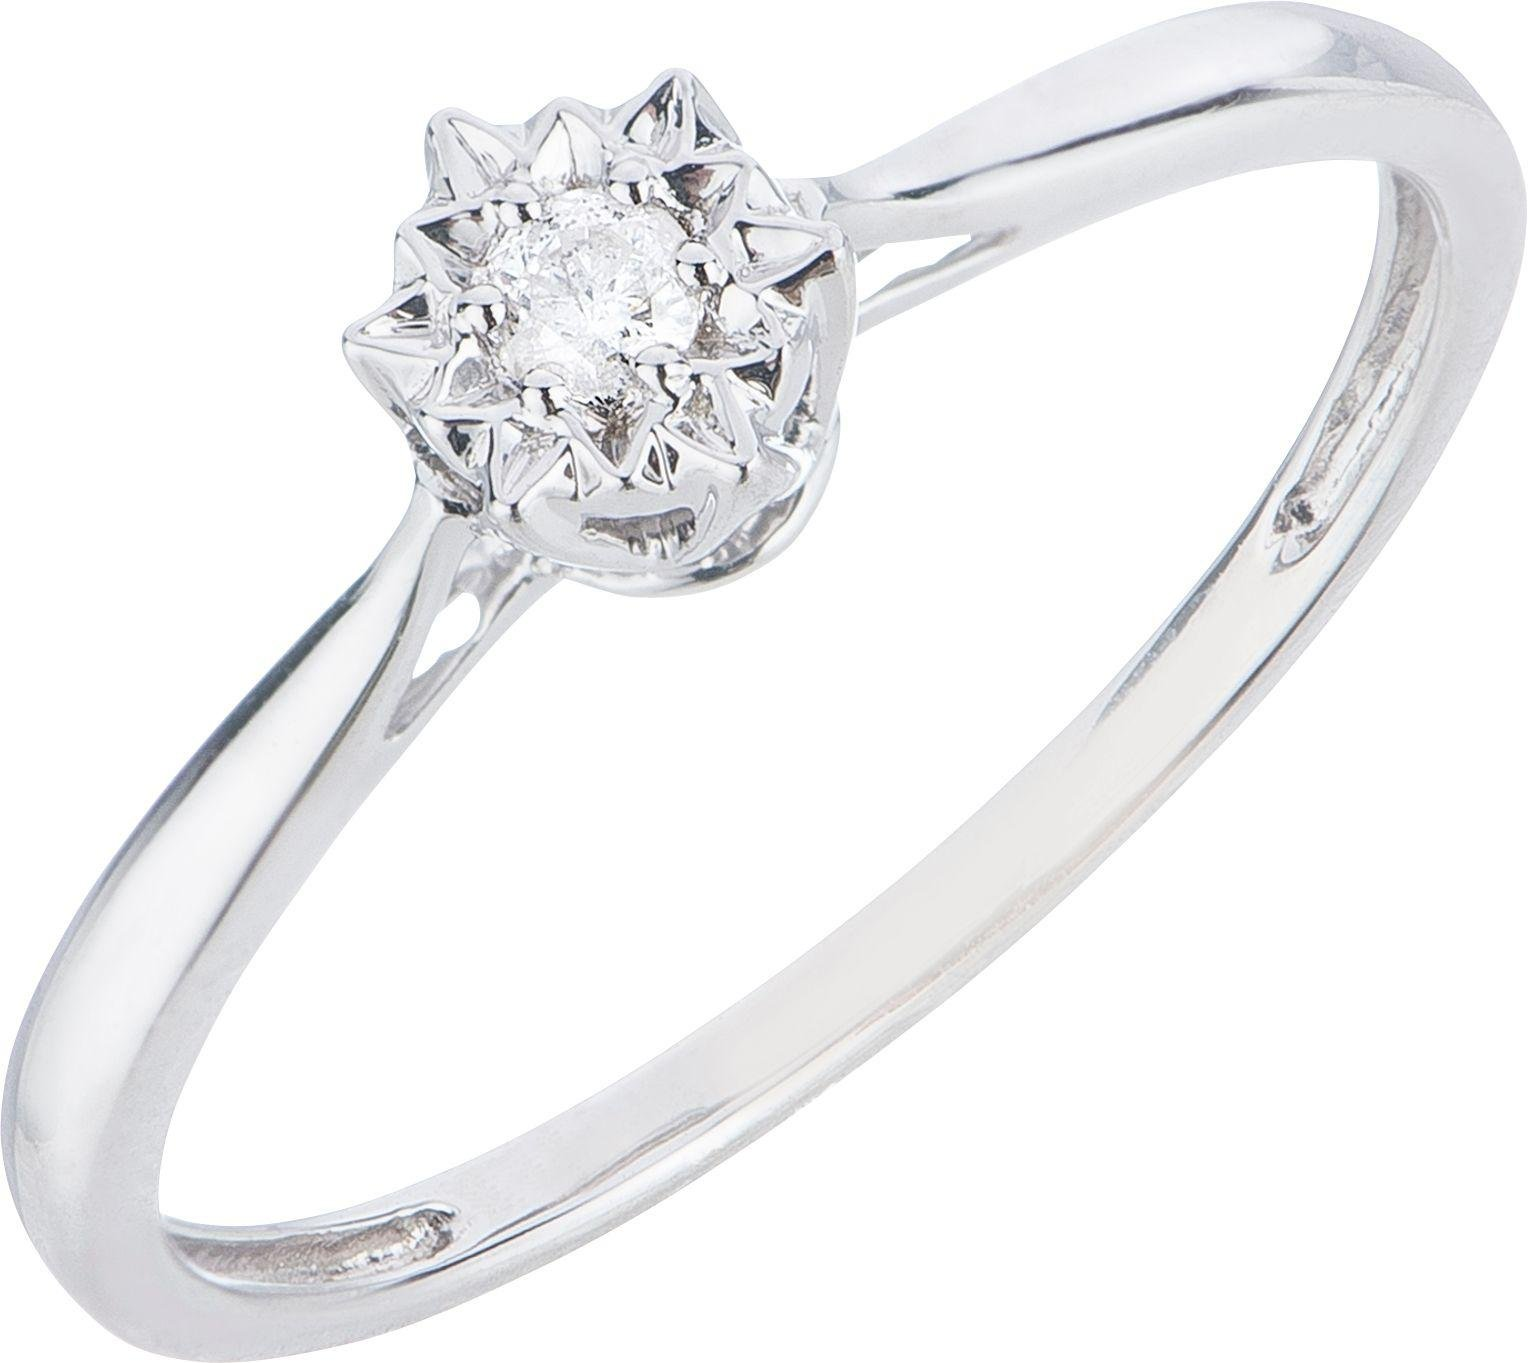 Buy 18ct White Gold Diamond Accent Solitaire Ring at Argos